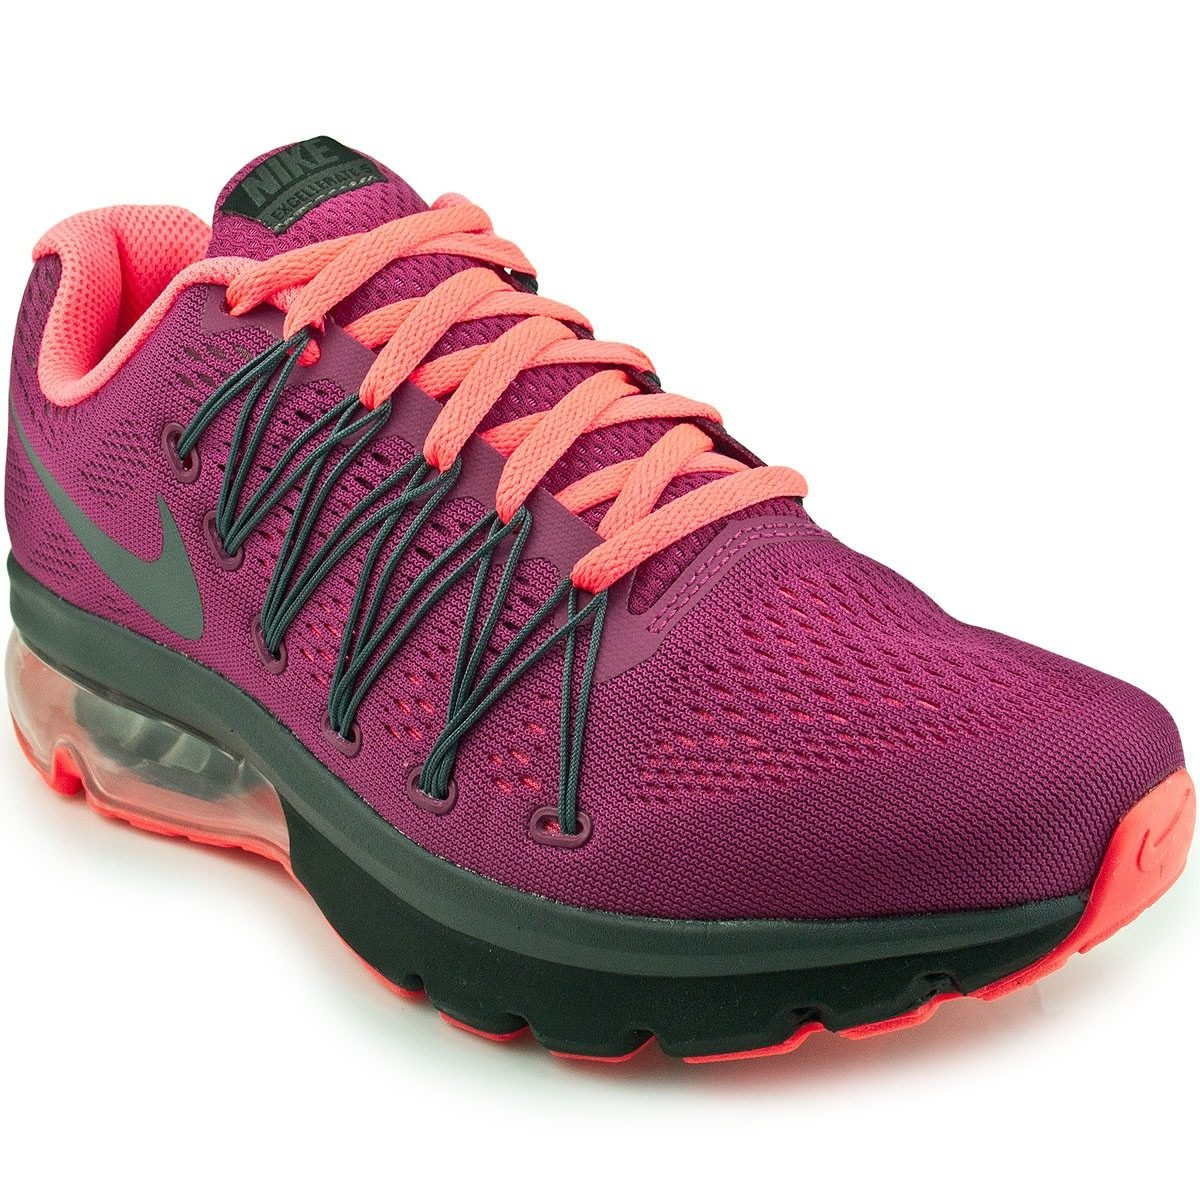 brand new 2e244 fe176 ... hot zapatillas nike air max excellerate 5 damas 852693 601. cargando  zoom. 6e0ca 83e4a